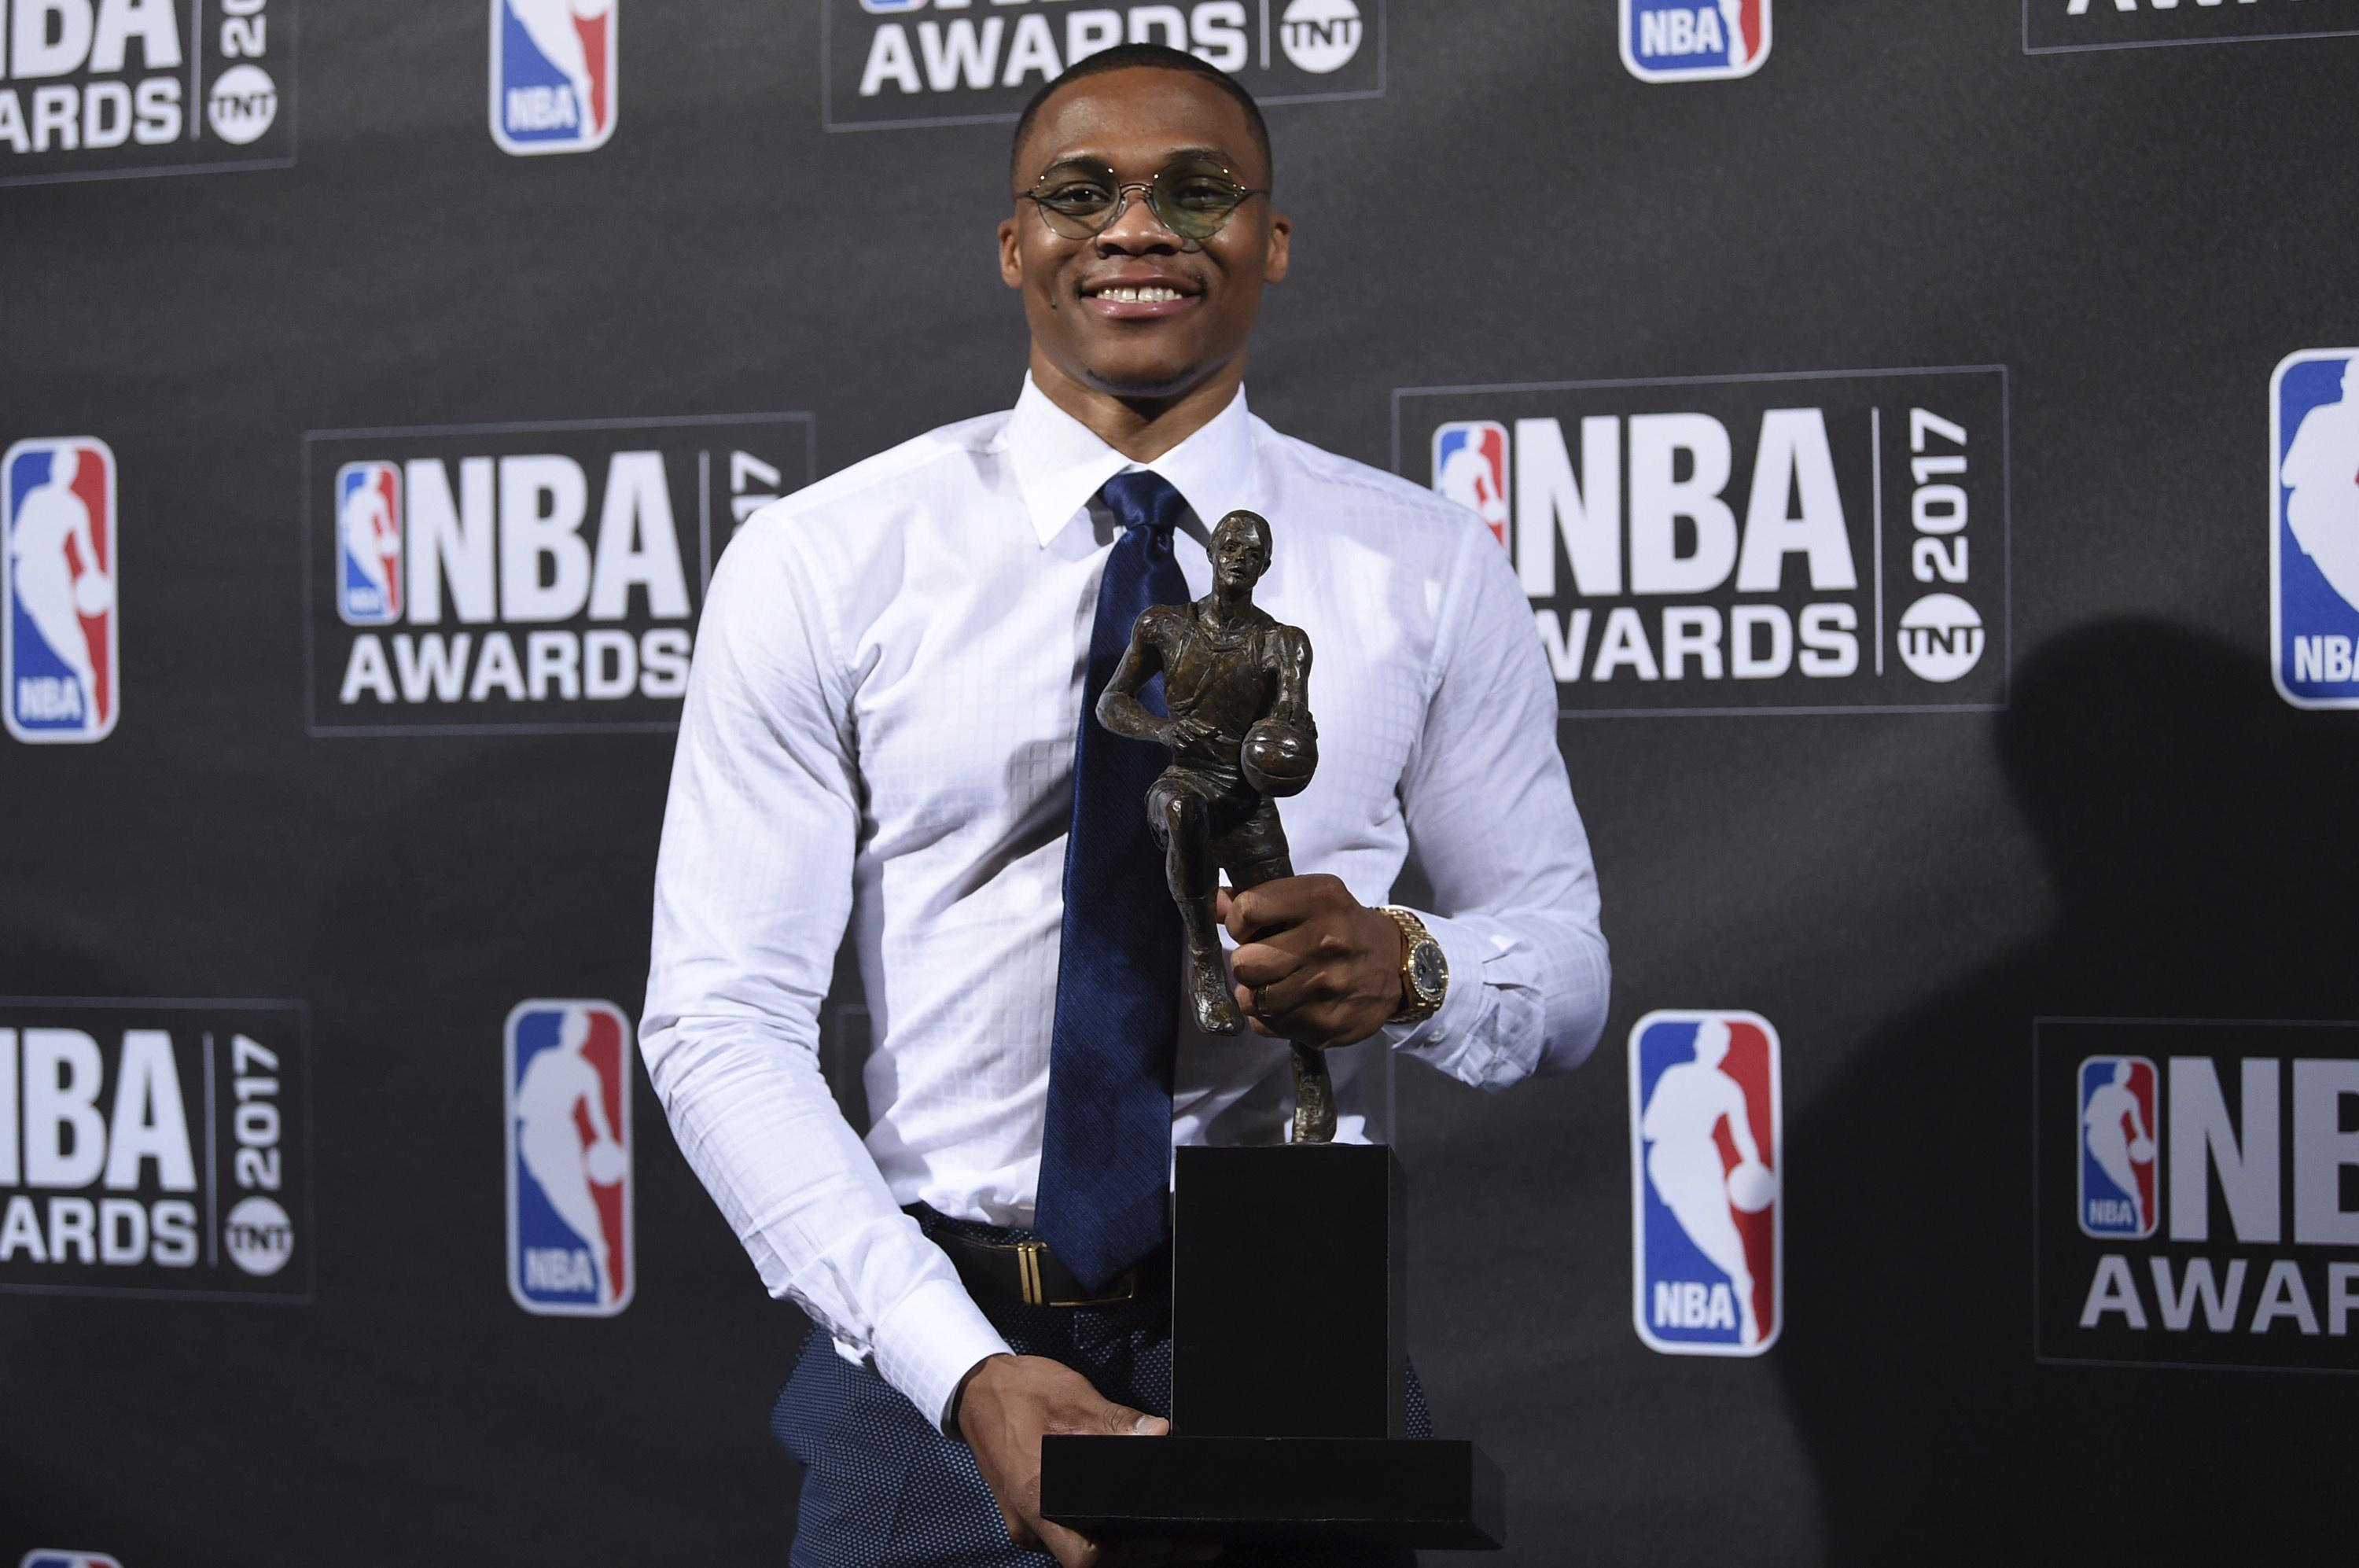 russell westbrook easily wins mvp at nba awards night | the